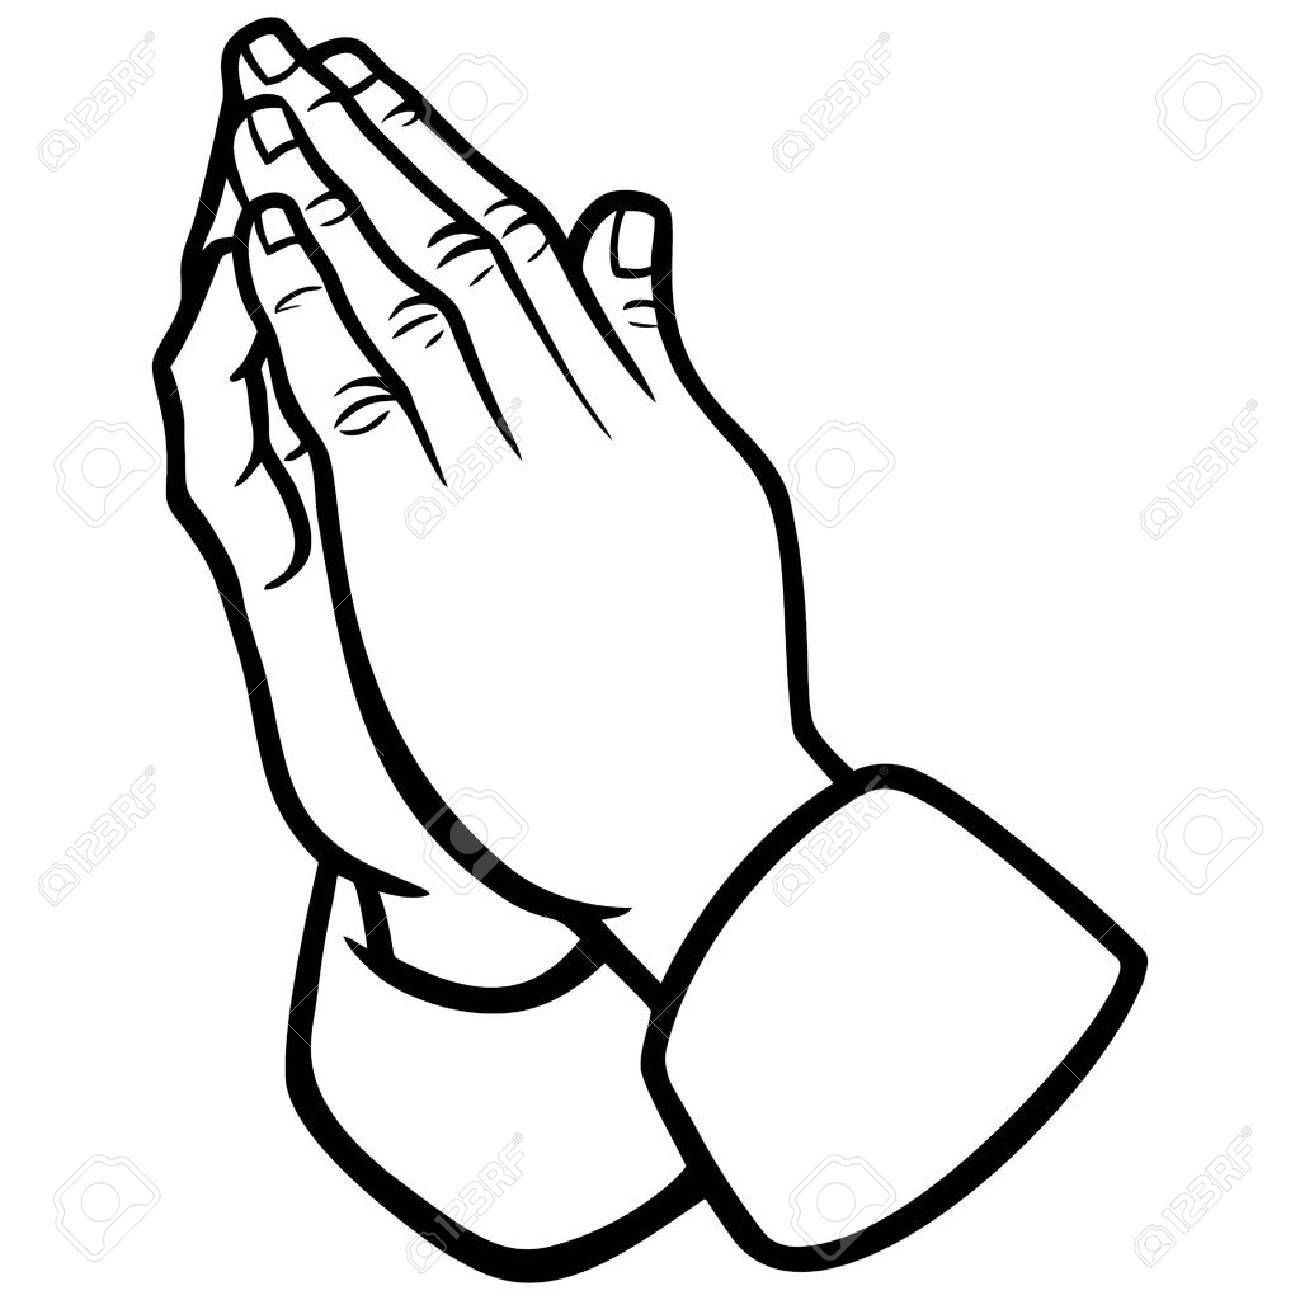 praying hands illustration royalty free cliparts vectors and stock rh 123rf com praying hands vector art 3d praying hands vectors